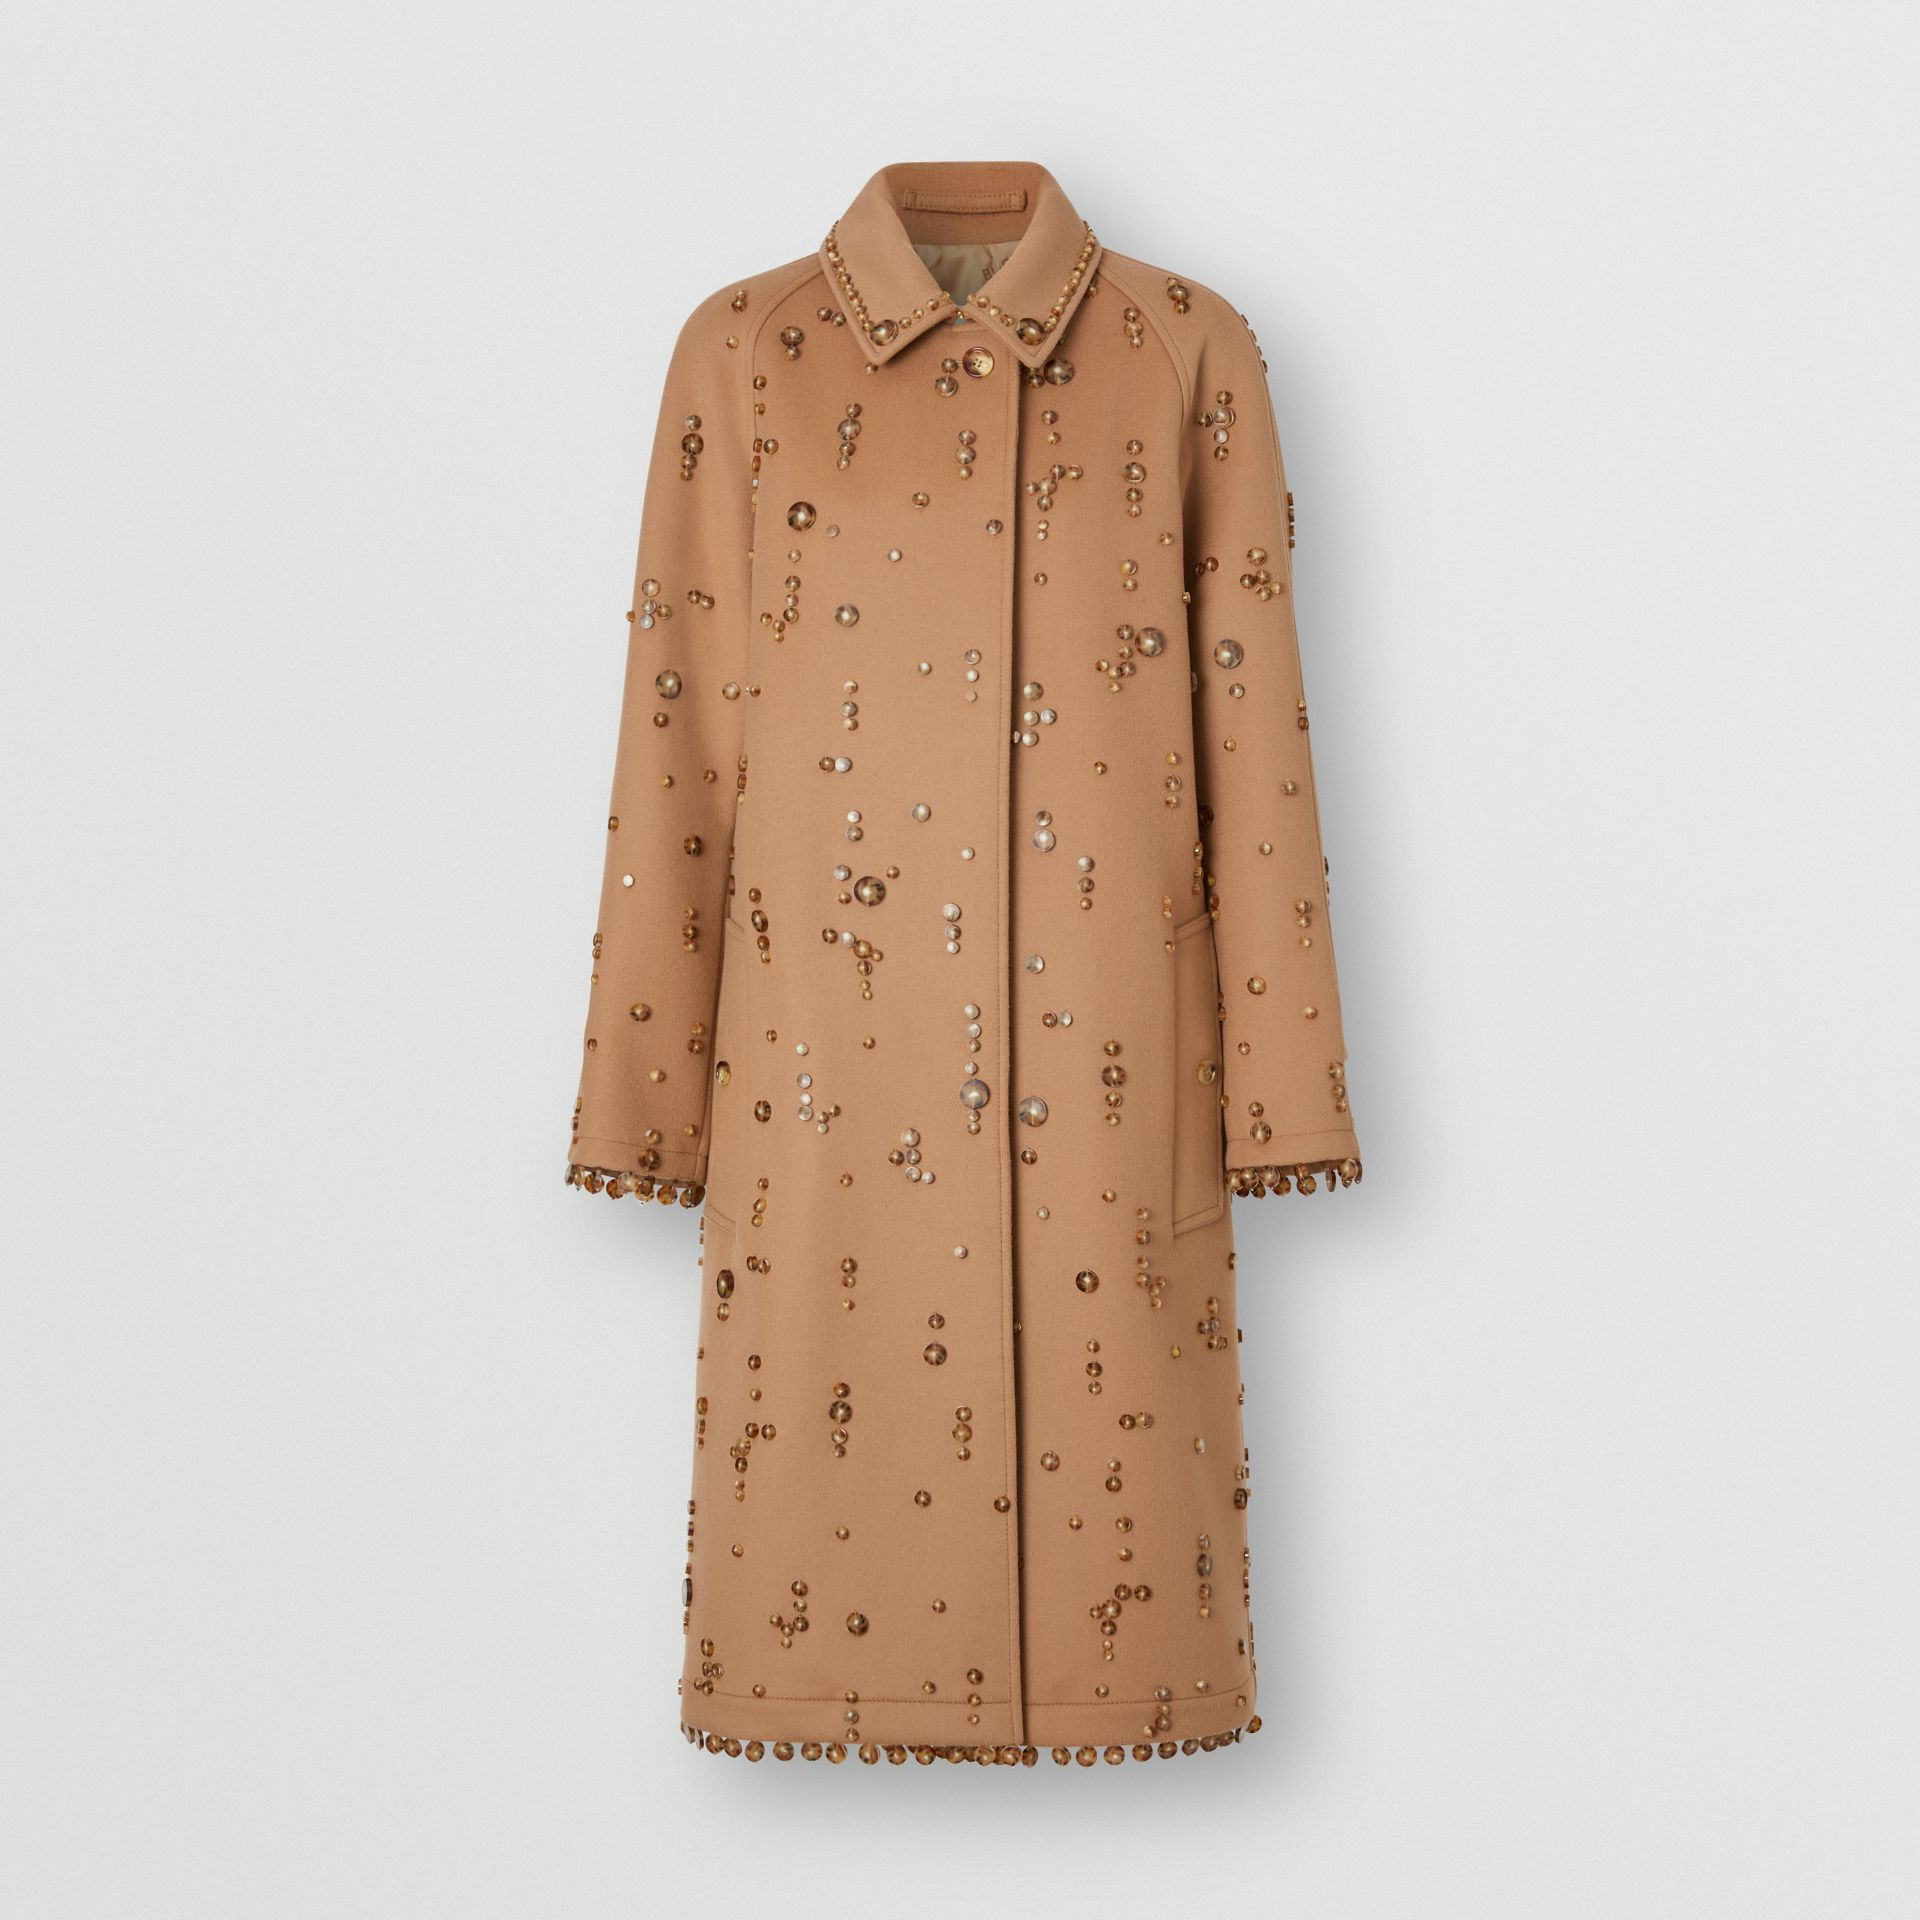 Embellished Wool Cashmere Car Coat in Camel - Women | Burberry - gallery image 3